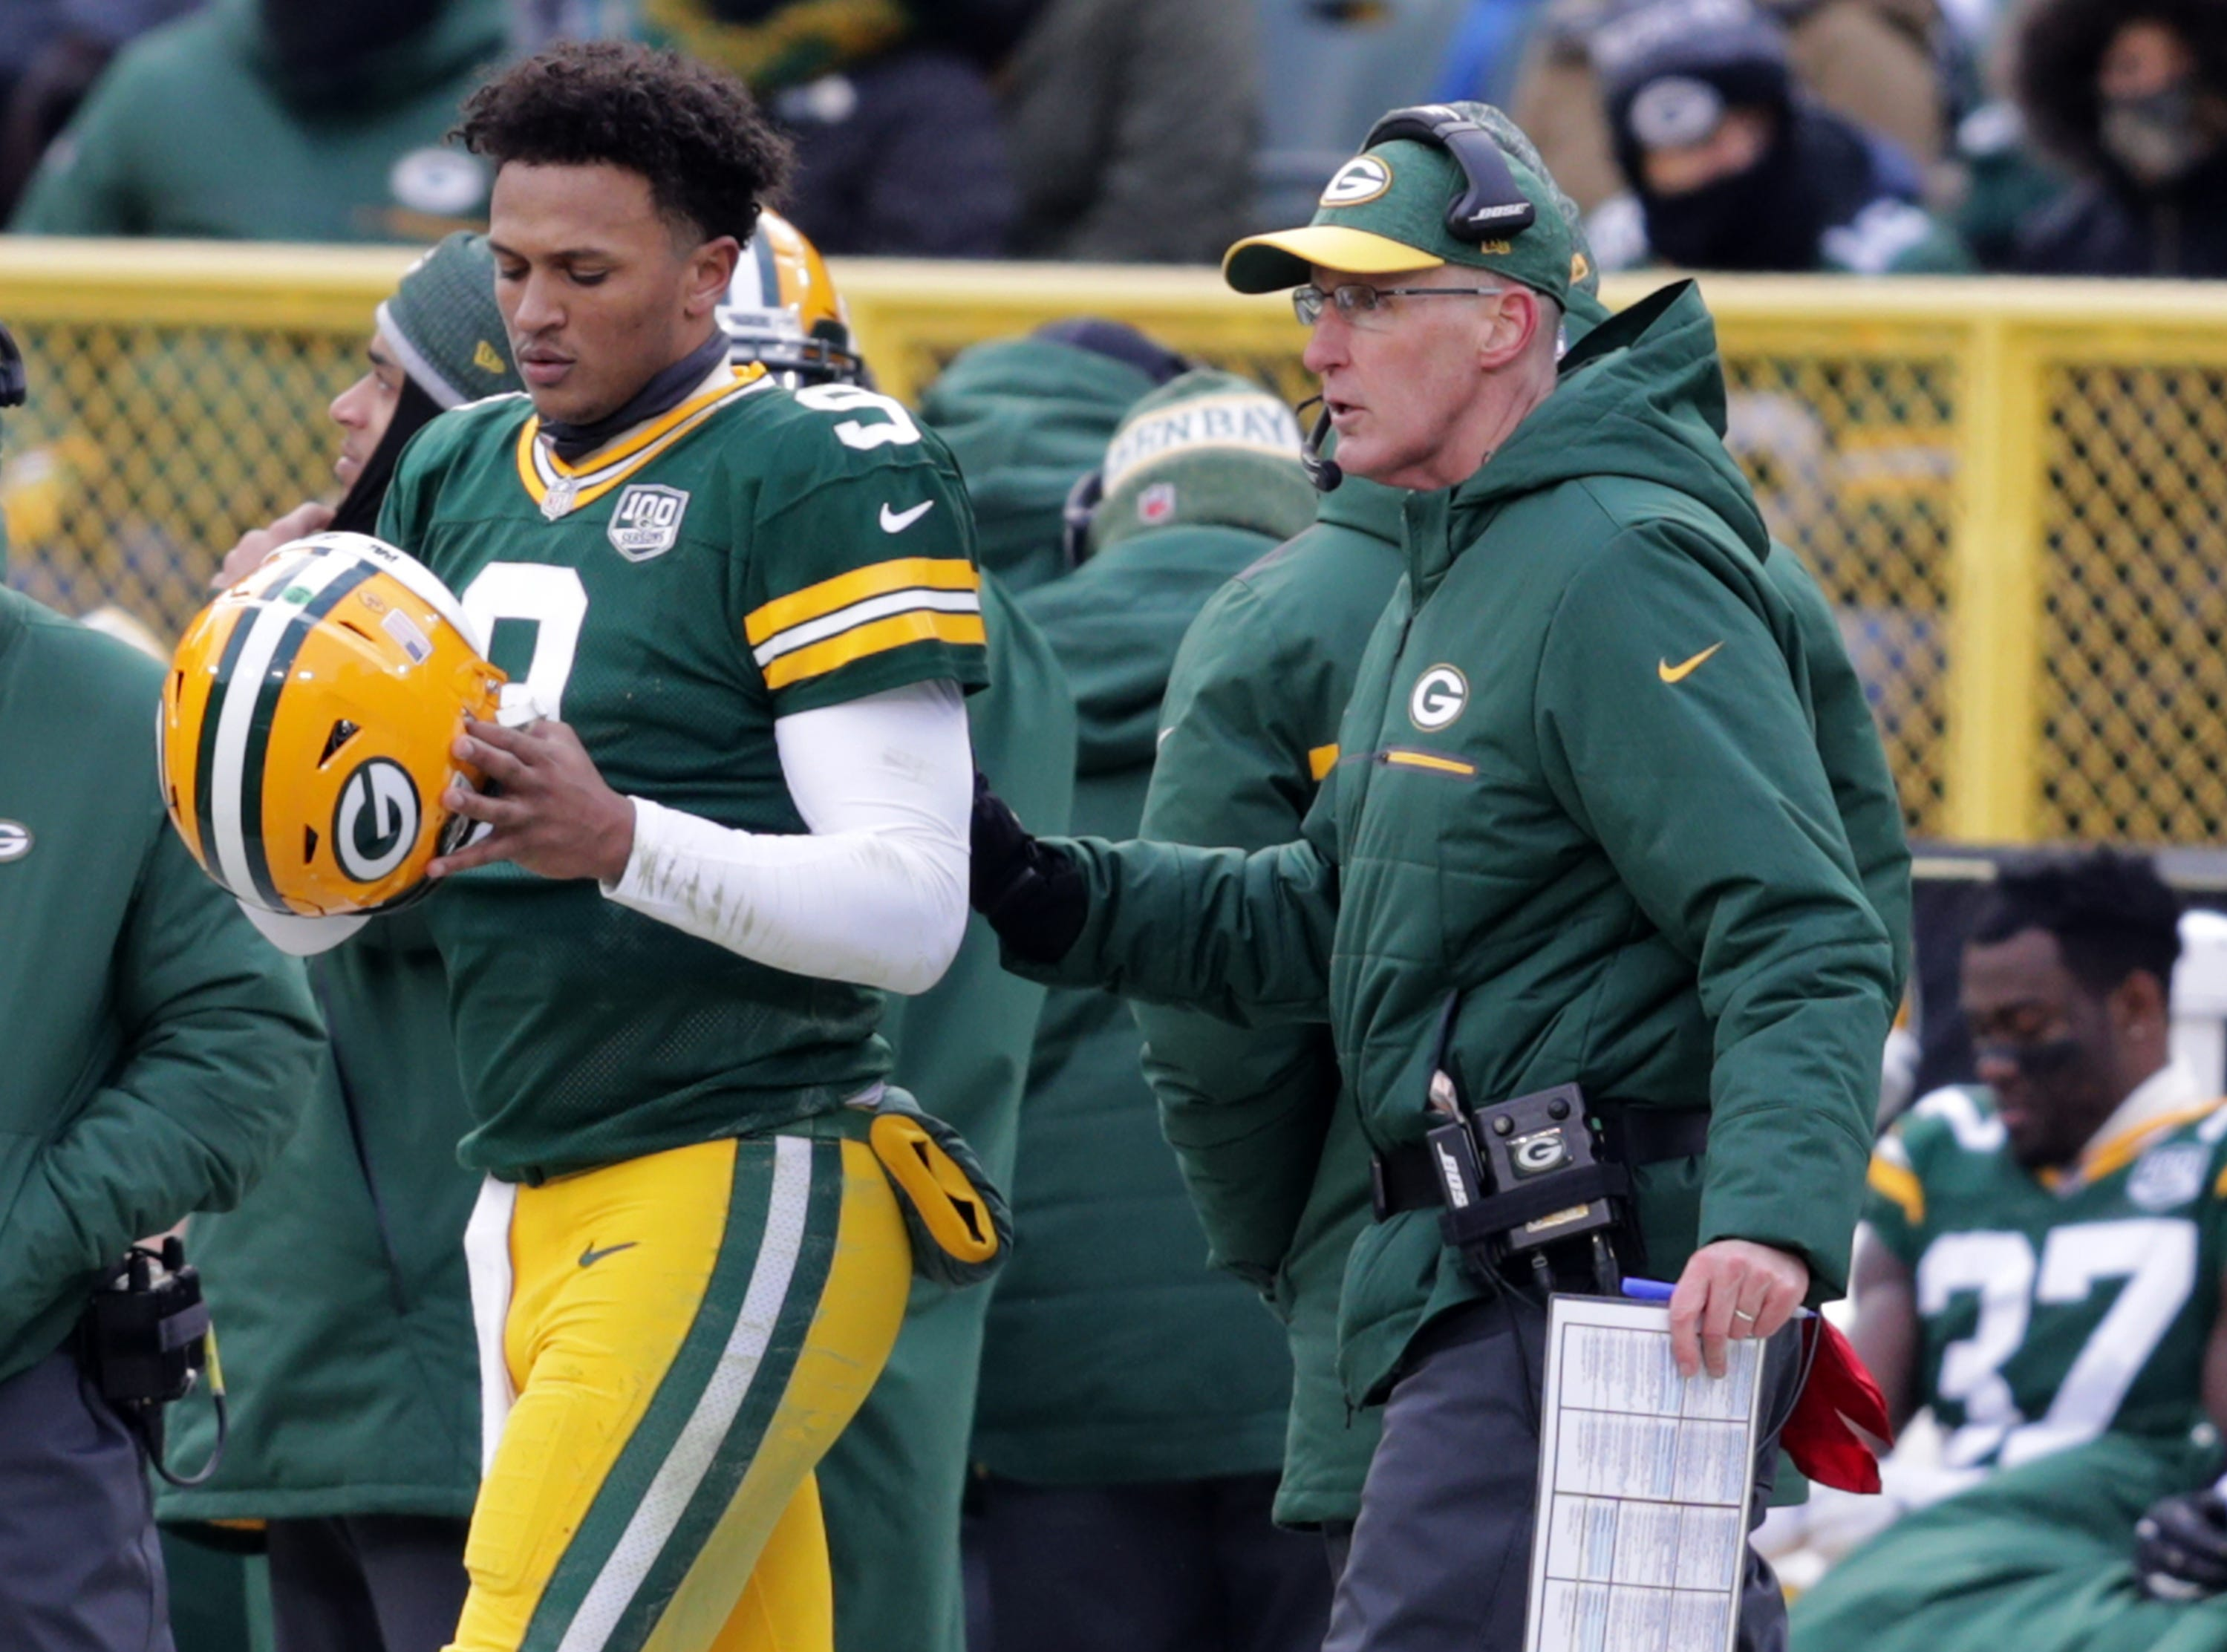 The Green Bay Packers interim head coach Joe Philbin with DeShone Kizer during the Packers' 31 to 0 loss to the Detroit Lions during their football game on Sunday, December 30, 2018, at Lambeau Field in Green Bay, Wis. Wm. Glasheen/USA TODAY NETWORK-Wisconsin.